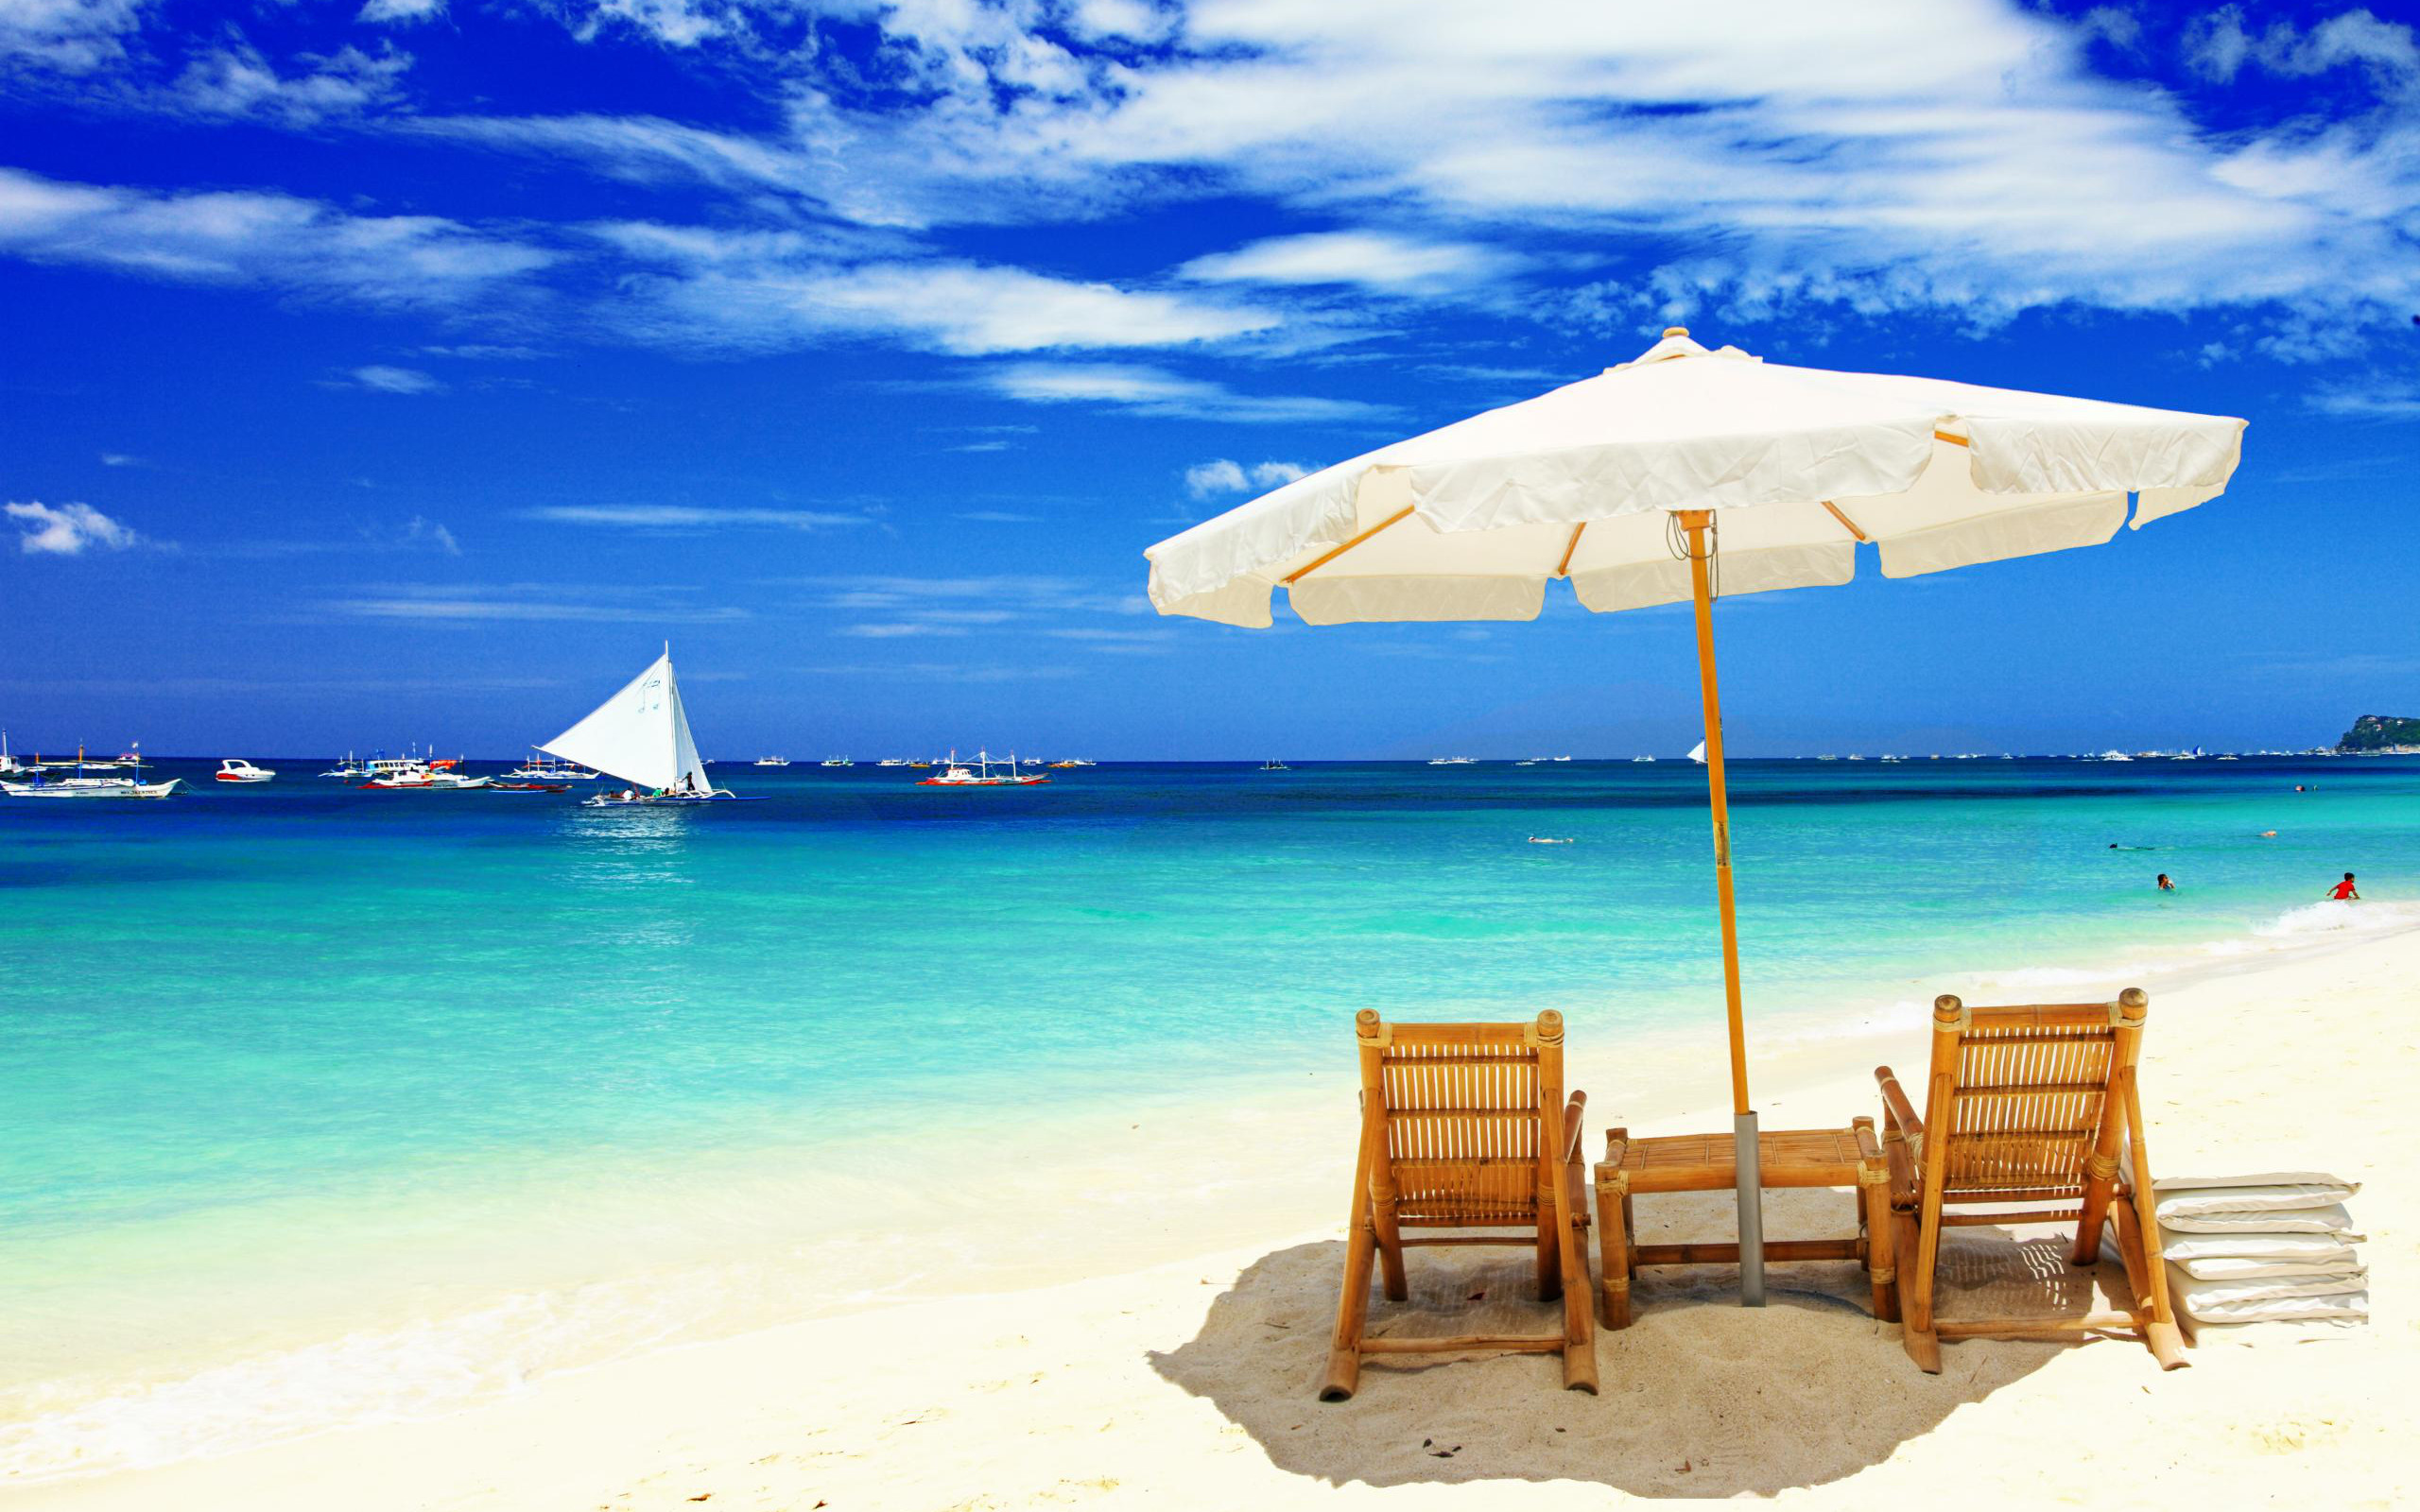 Beach Wallpaper Widescreen High Resolution 60 Images 2560x1600 Casual